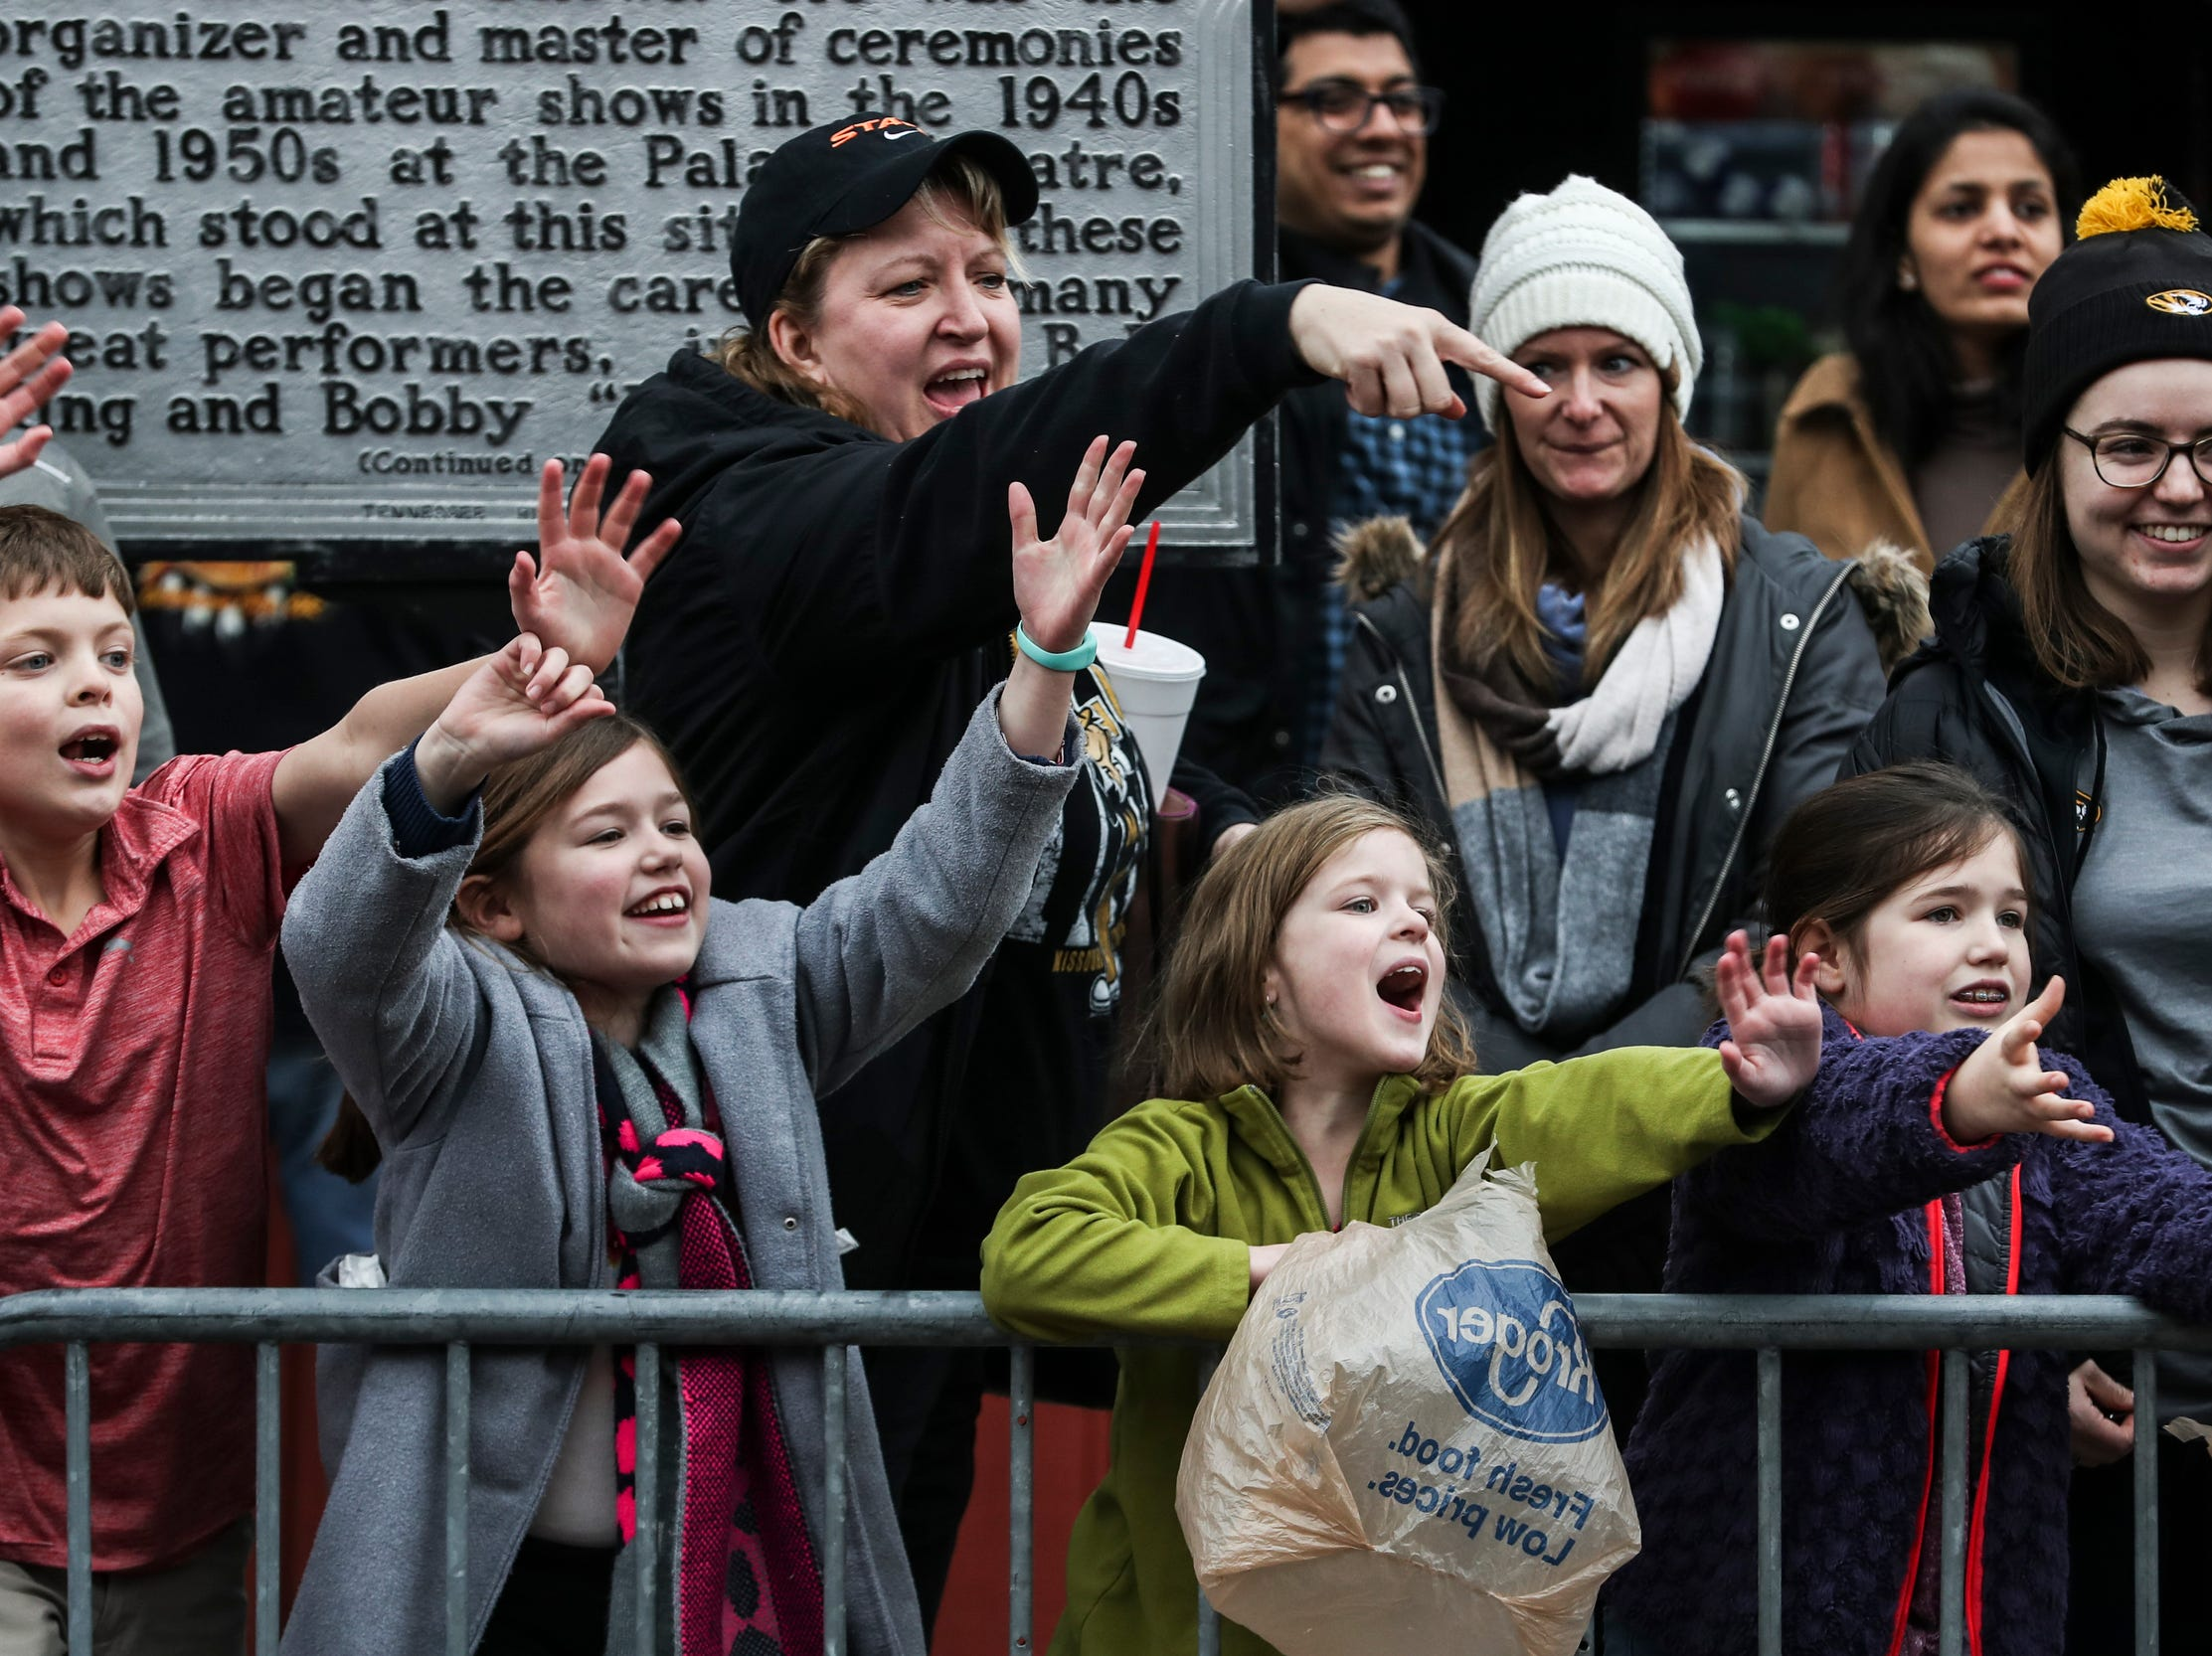 December 30 2018 - Kids reach out to catch candy during the Annual Liberty Bowl Parade & Pep Rally on Sunday. On Monday Oklahoma State Cowboys and Missouri Tigers play in the 2018 AutoZone Liberty Bowl.